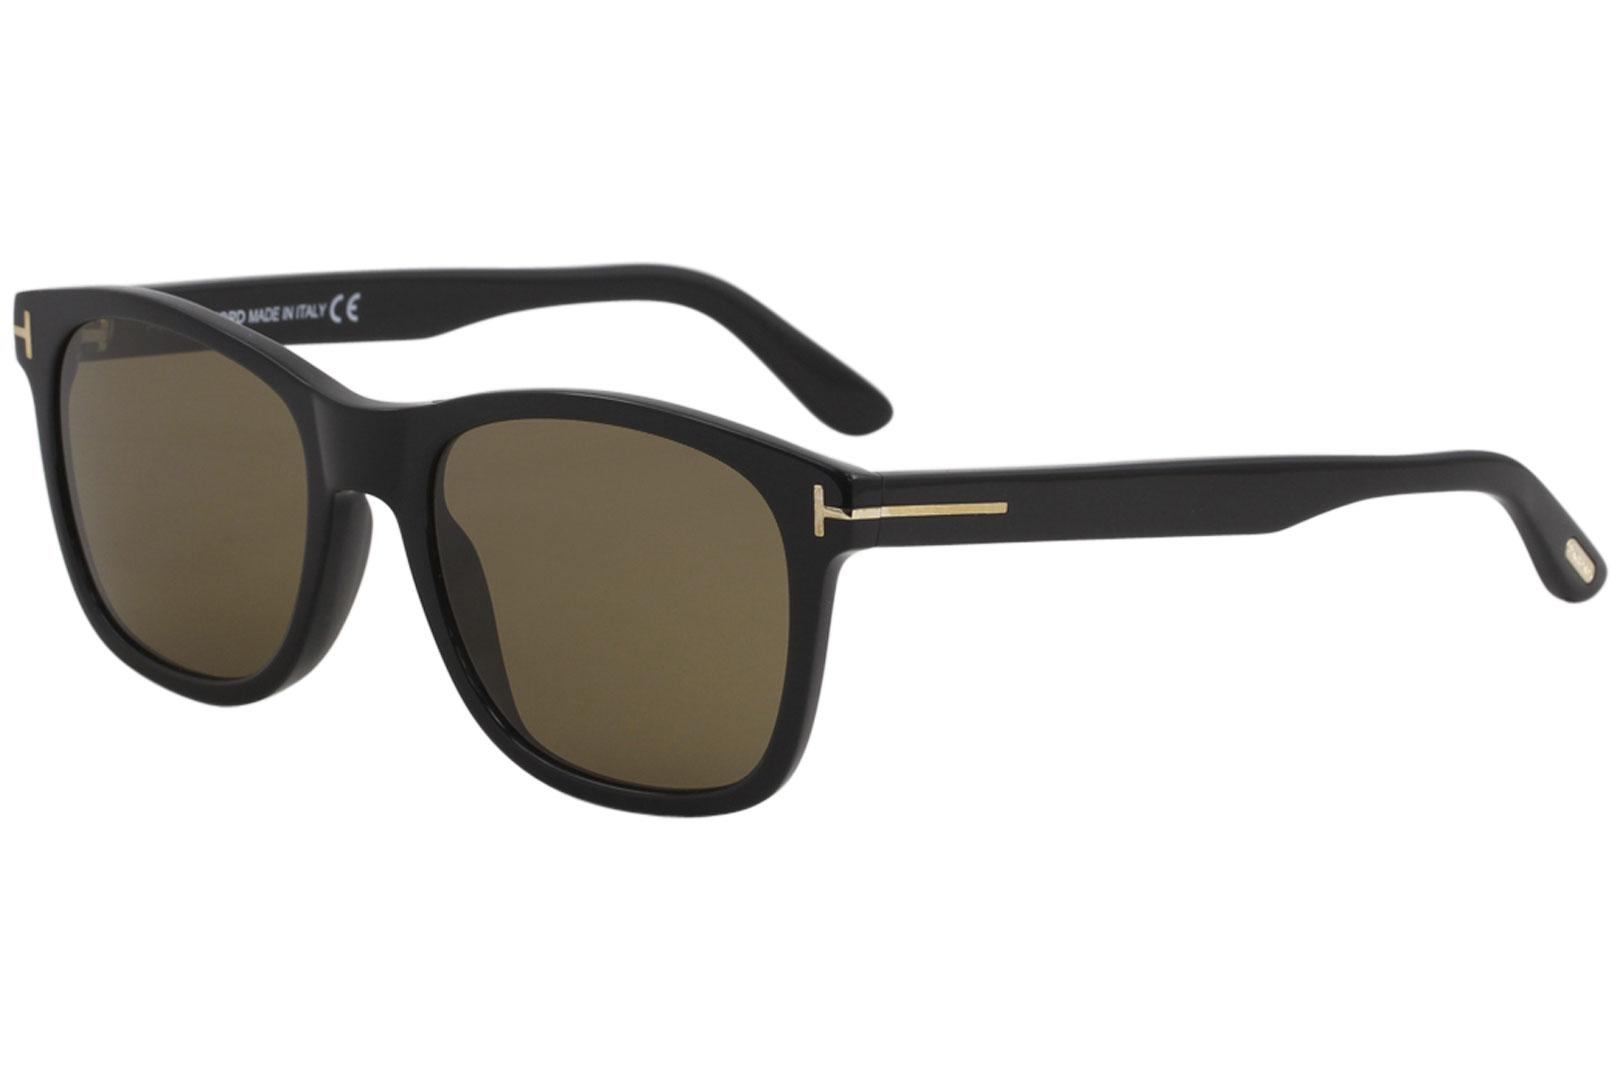 6ab46956e659 Tom Ford Men s Eric-02 TF595 TF 595 Fashion Square Sunglasses by Tom Ford